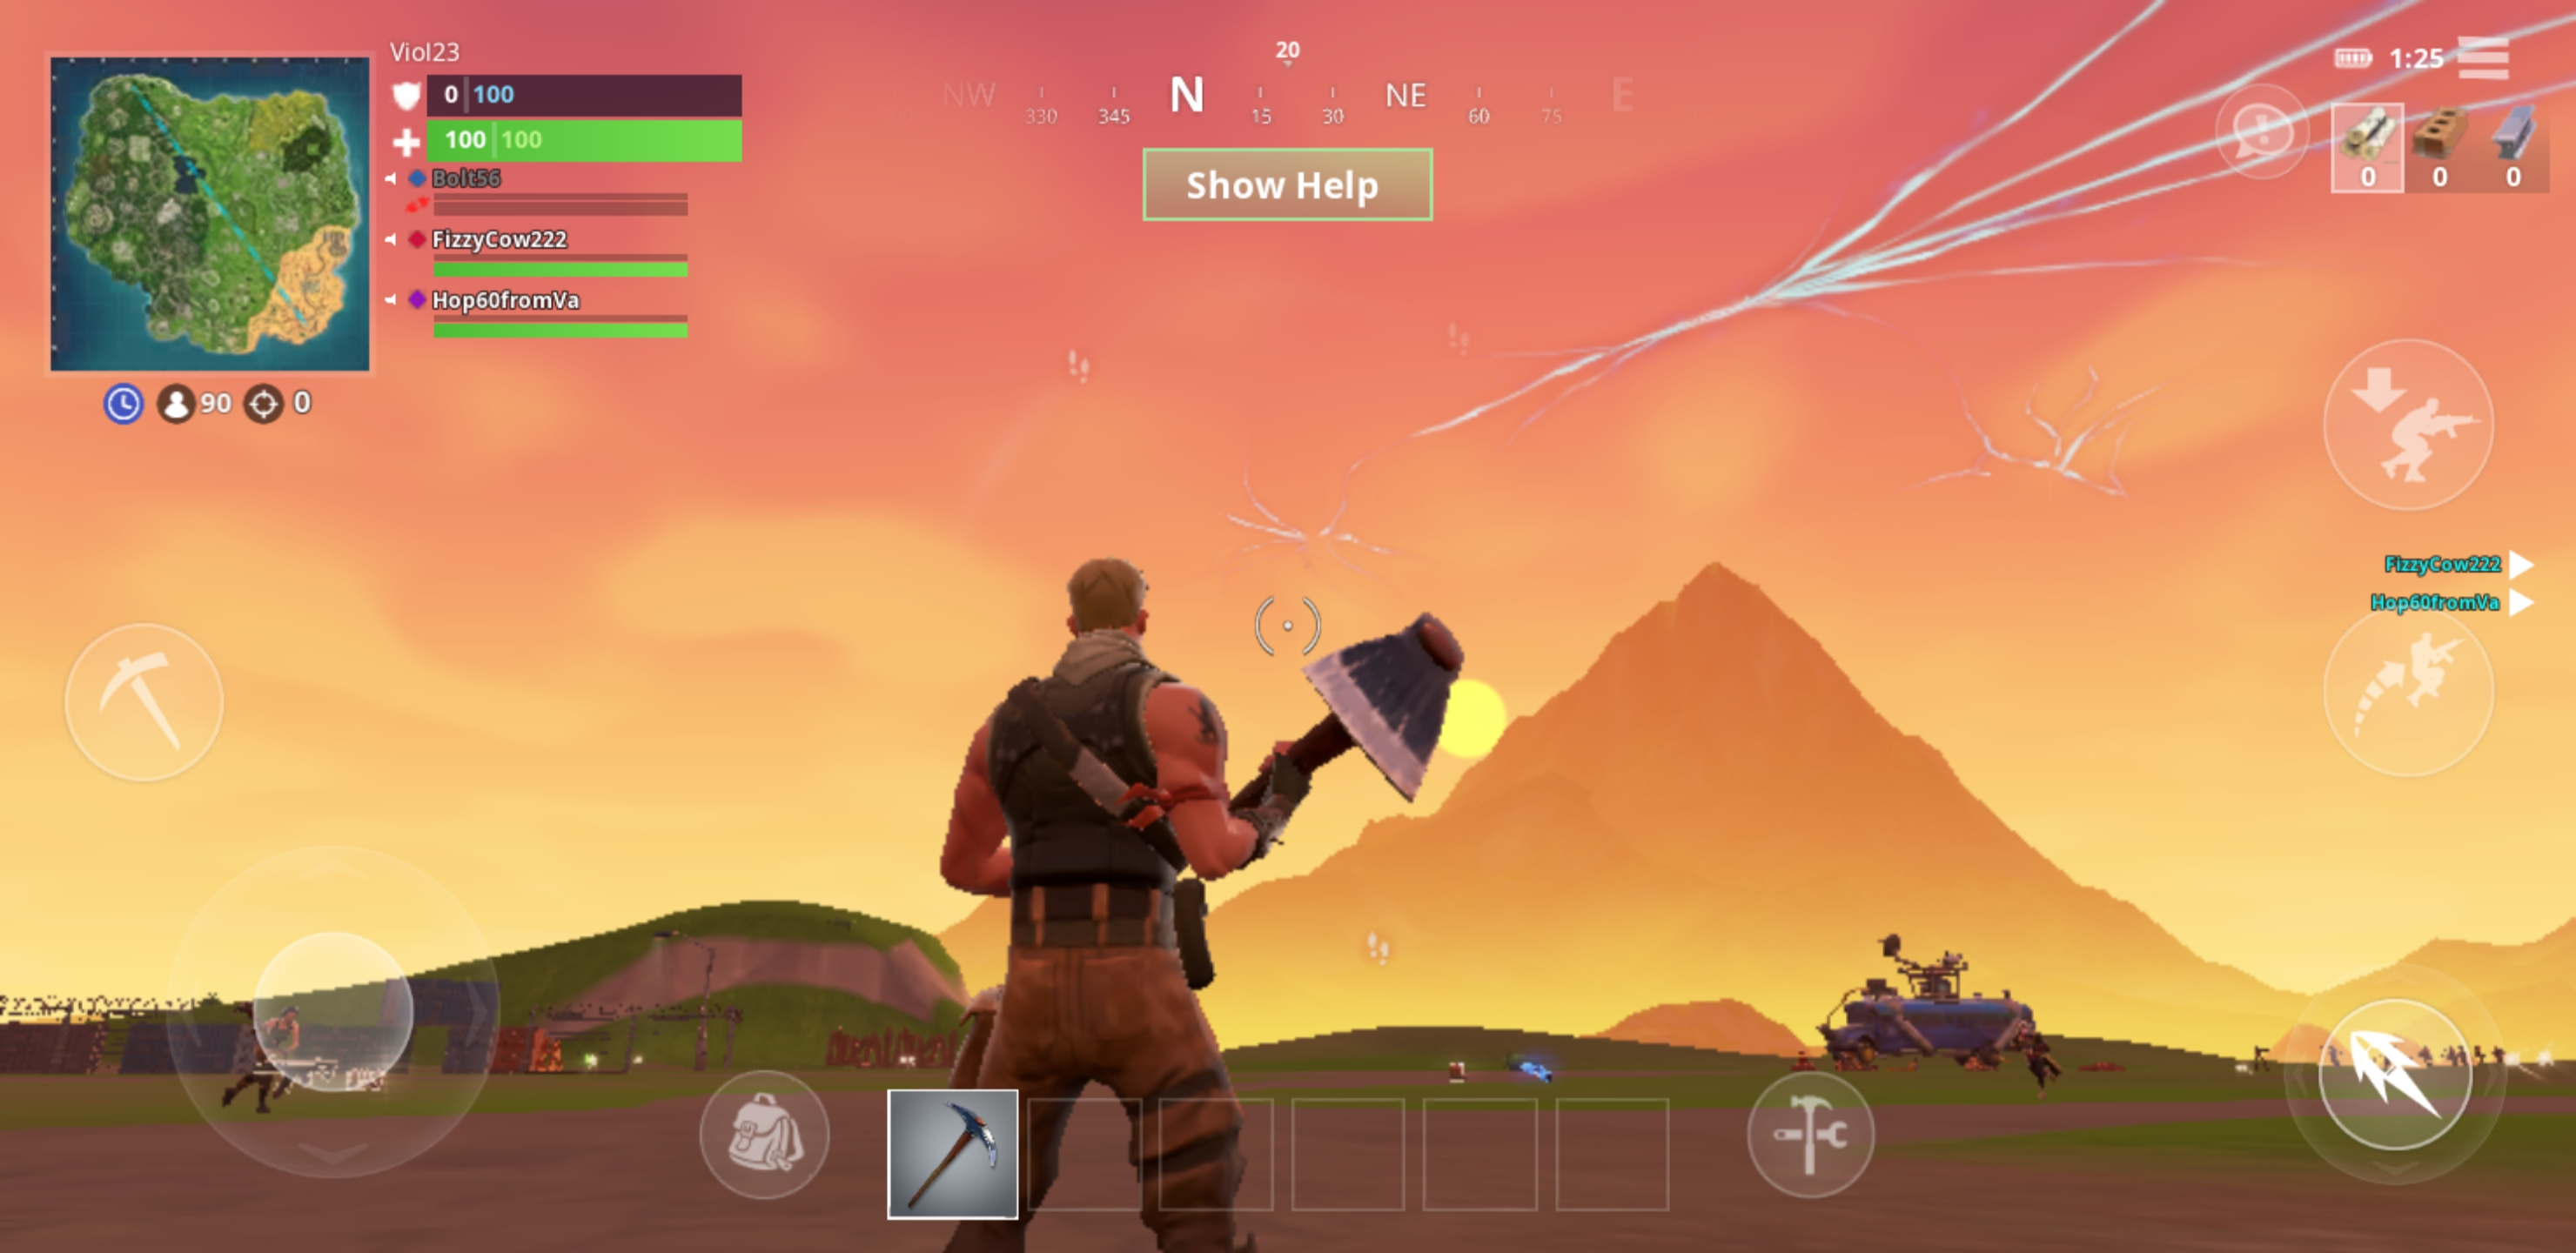 Hands-on] Fortnite for Android, the most frustrating version to play yet